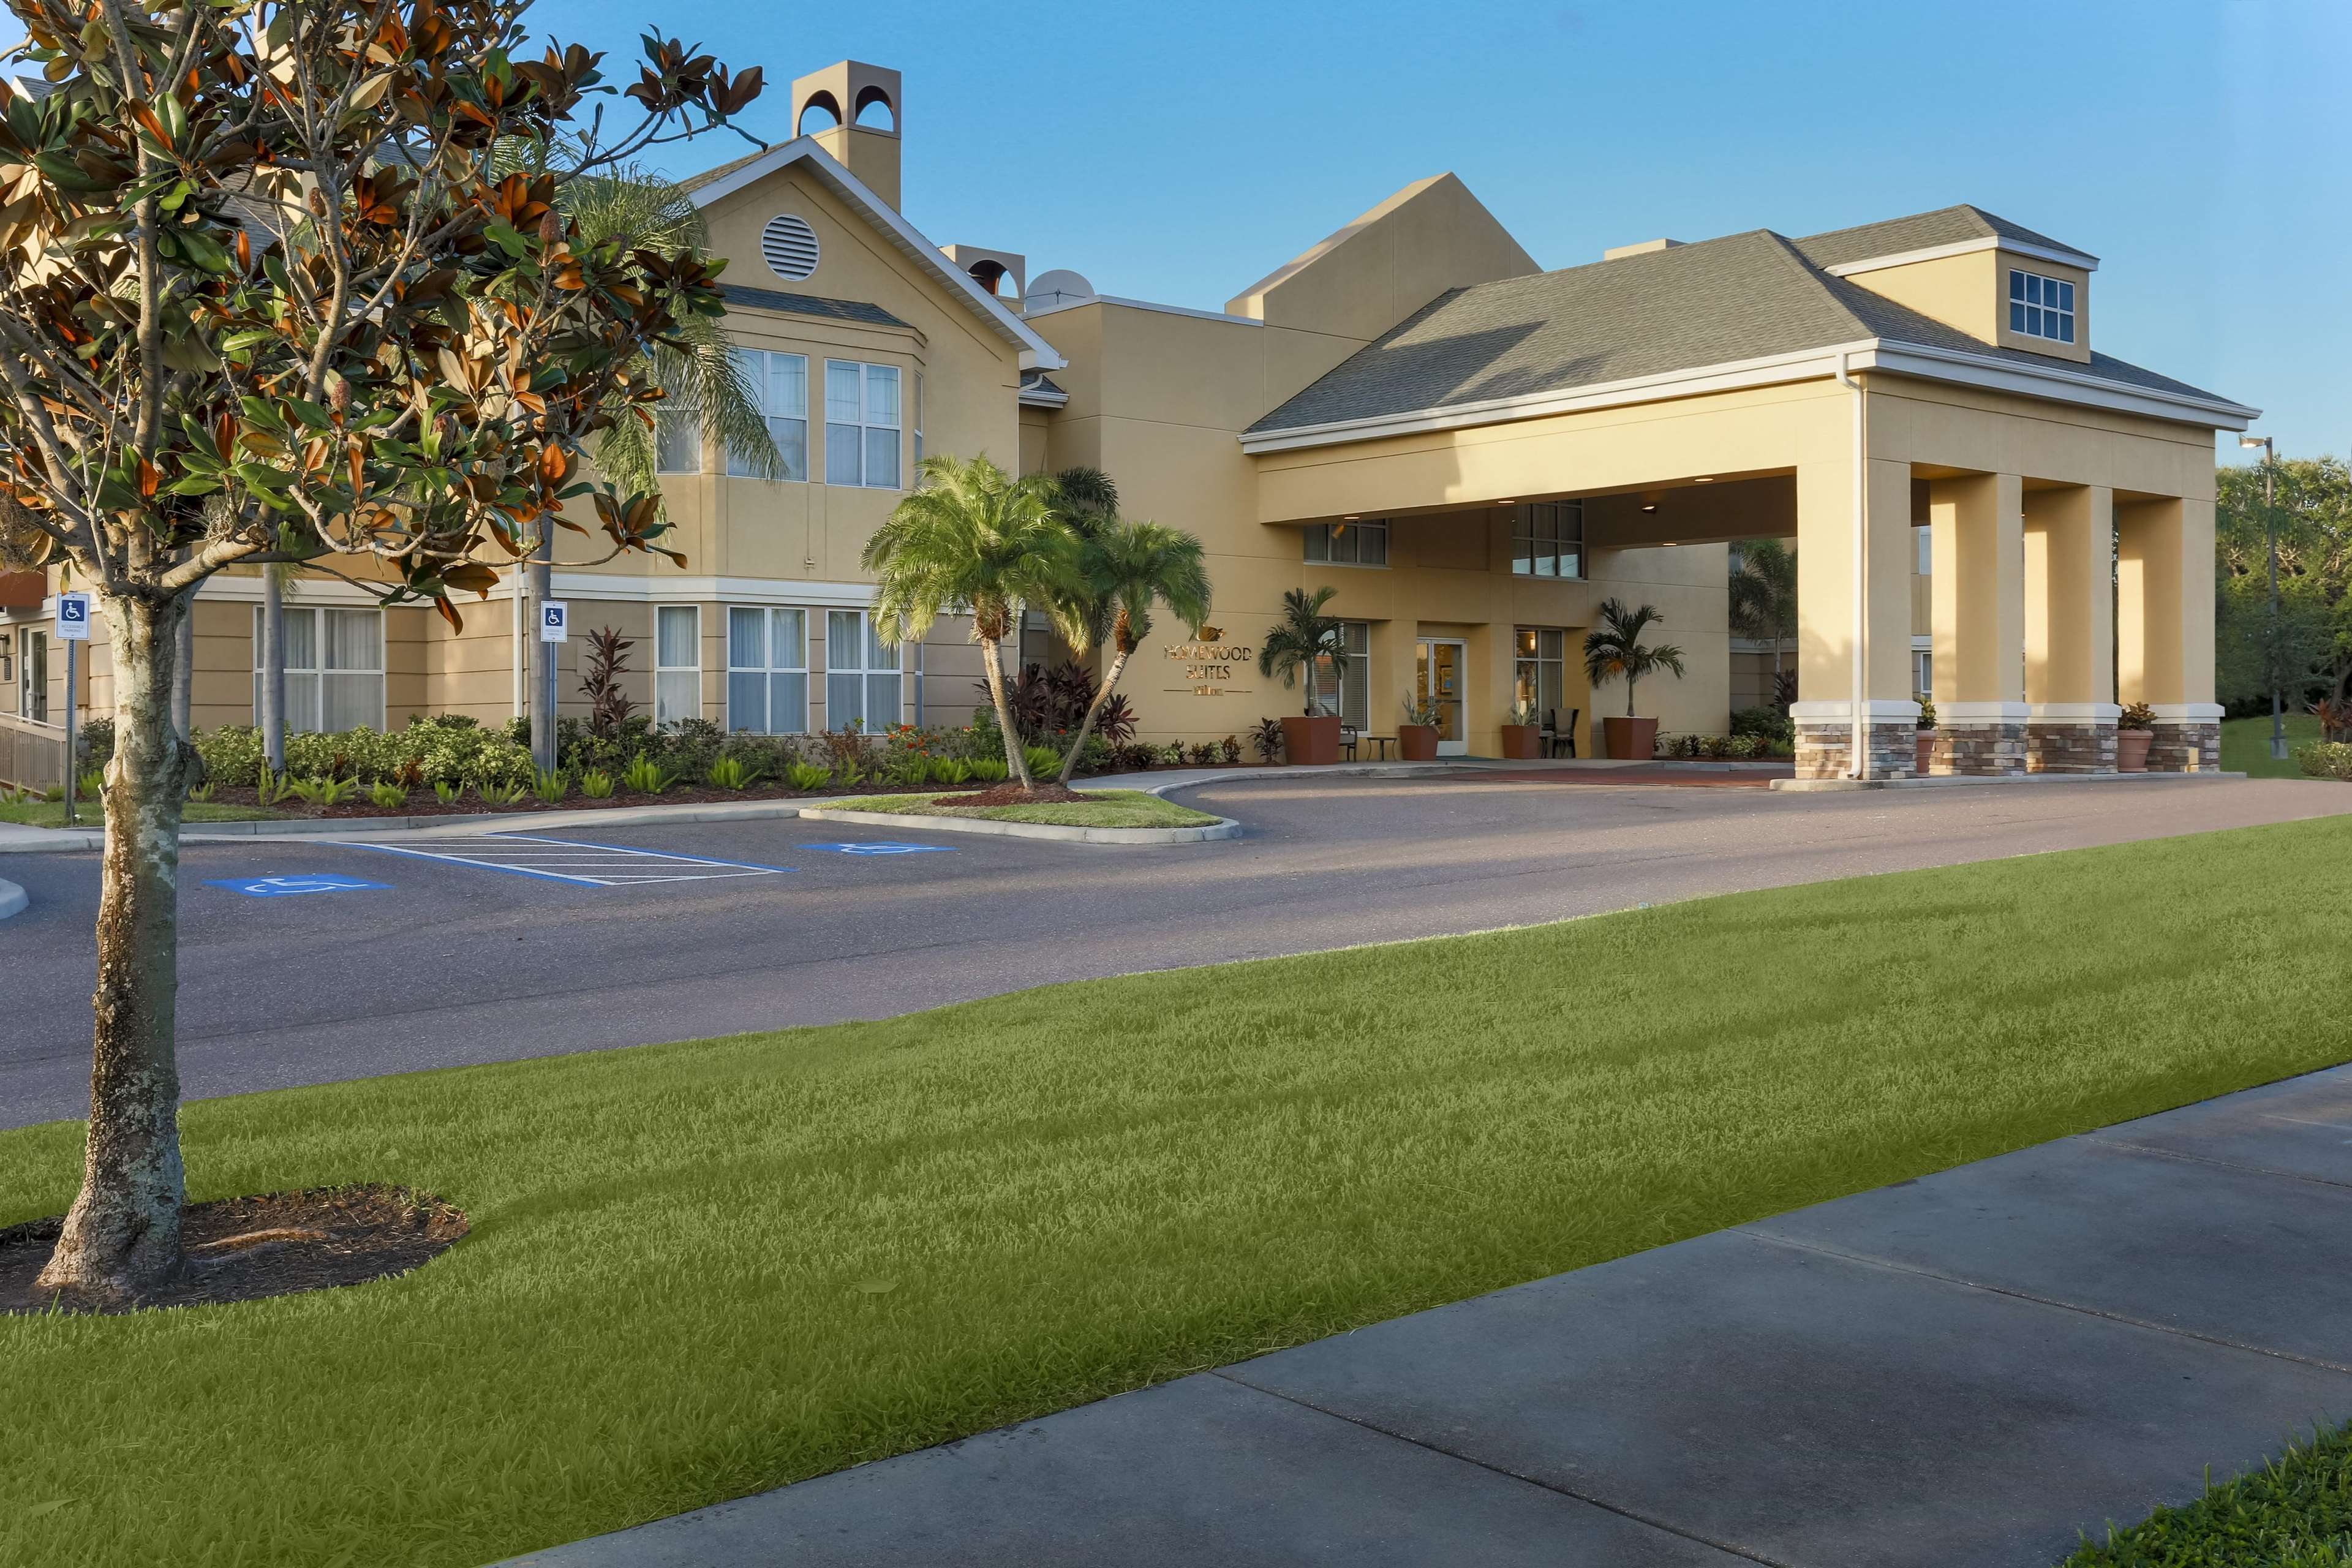 Homewood Suites by Hilton St. Petersburg Clearwater image 15